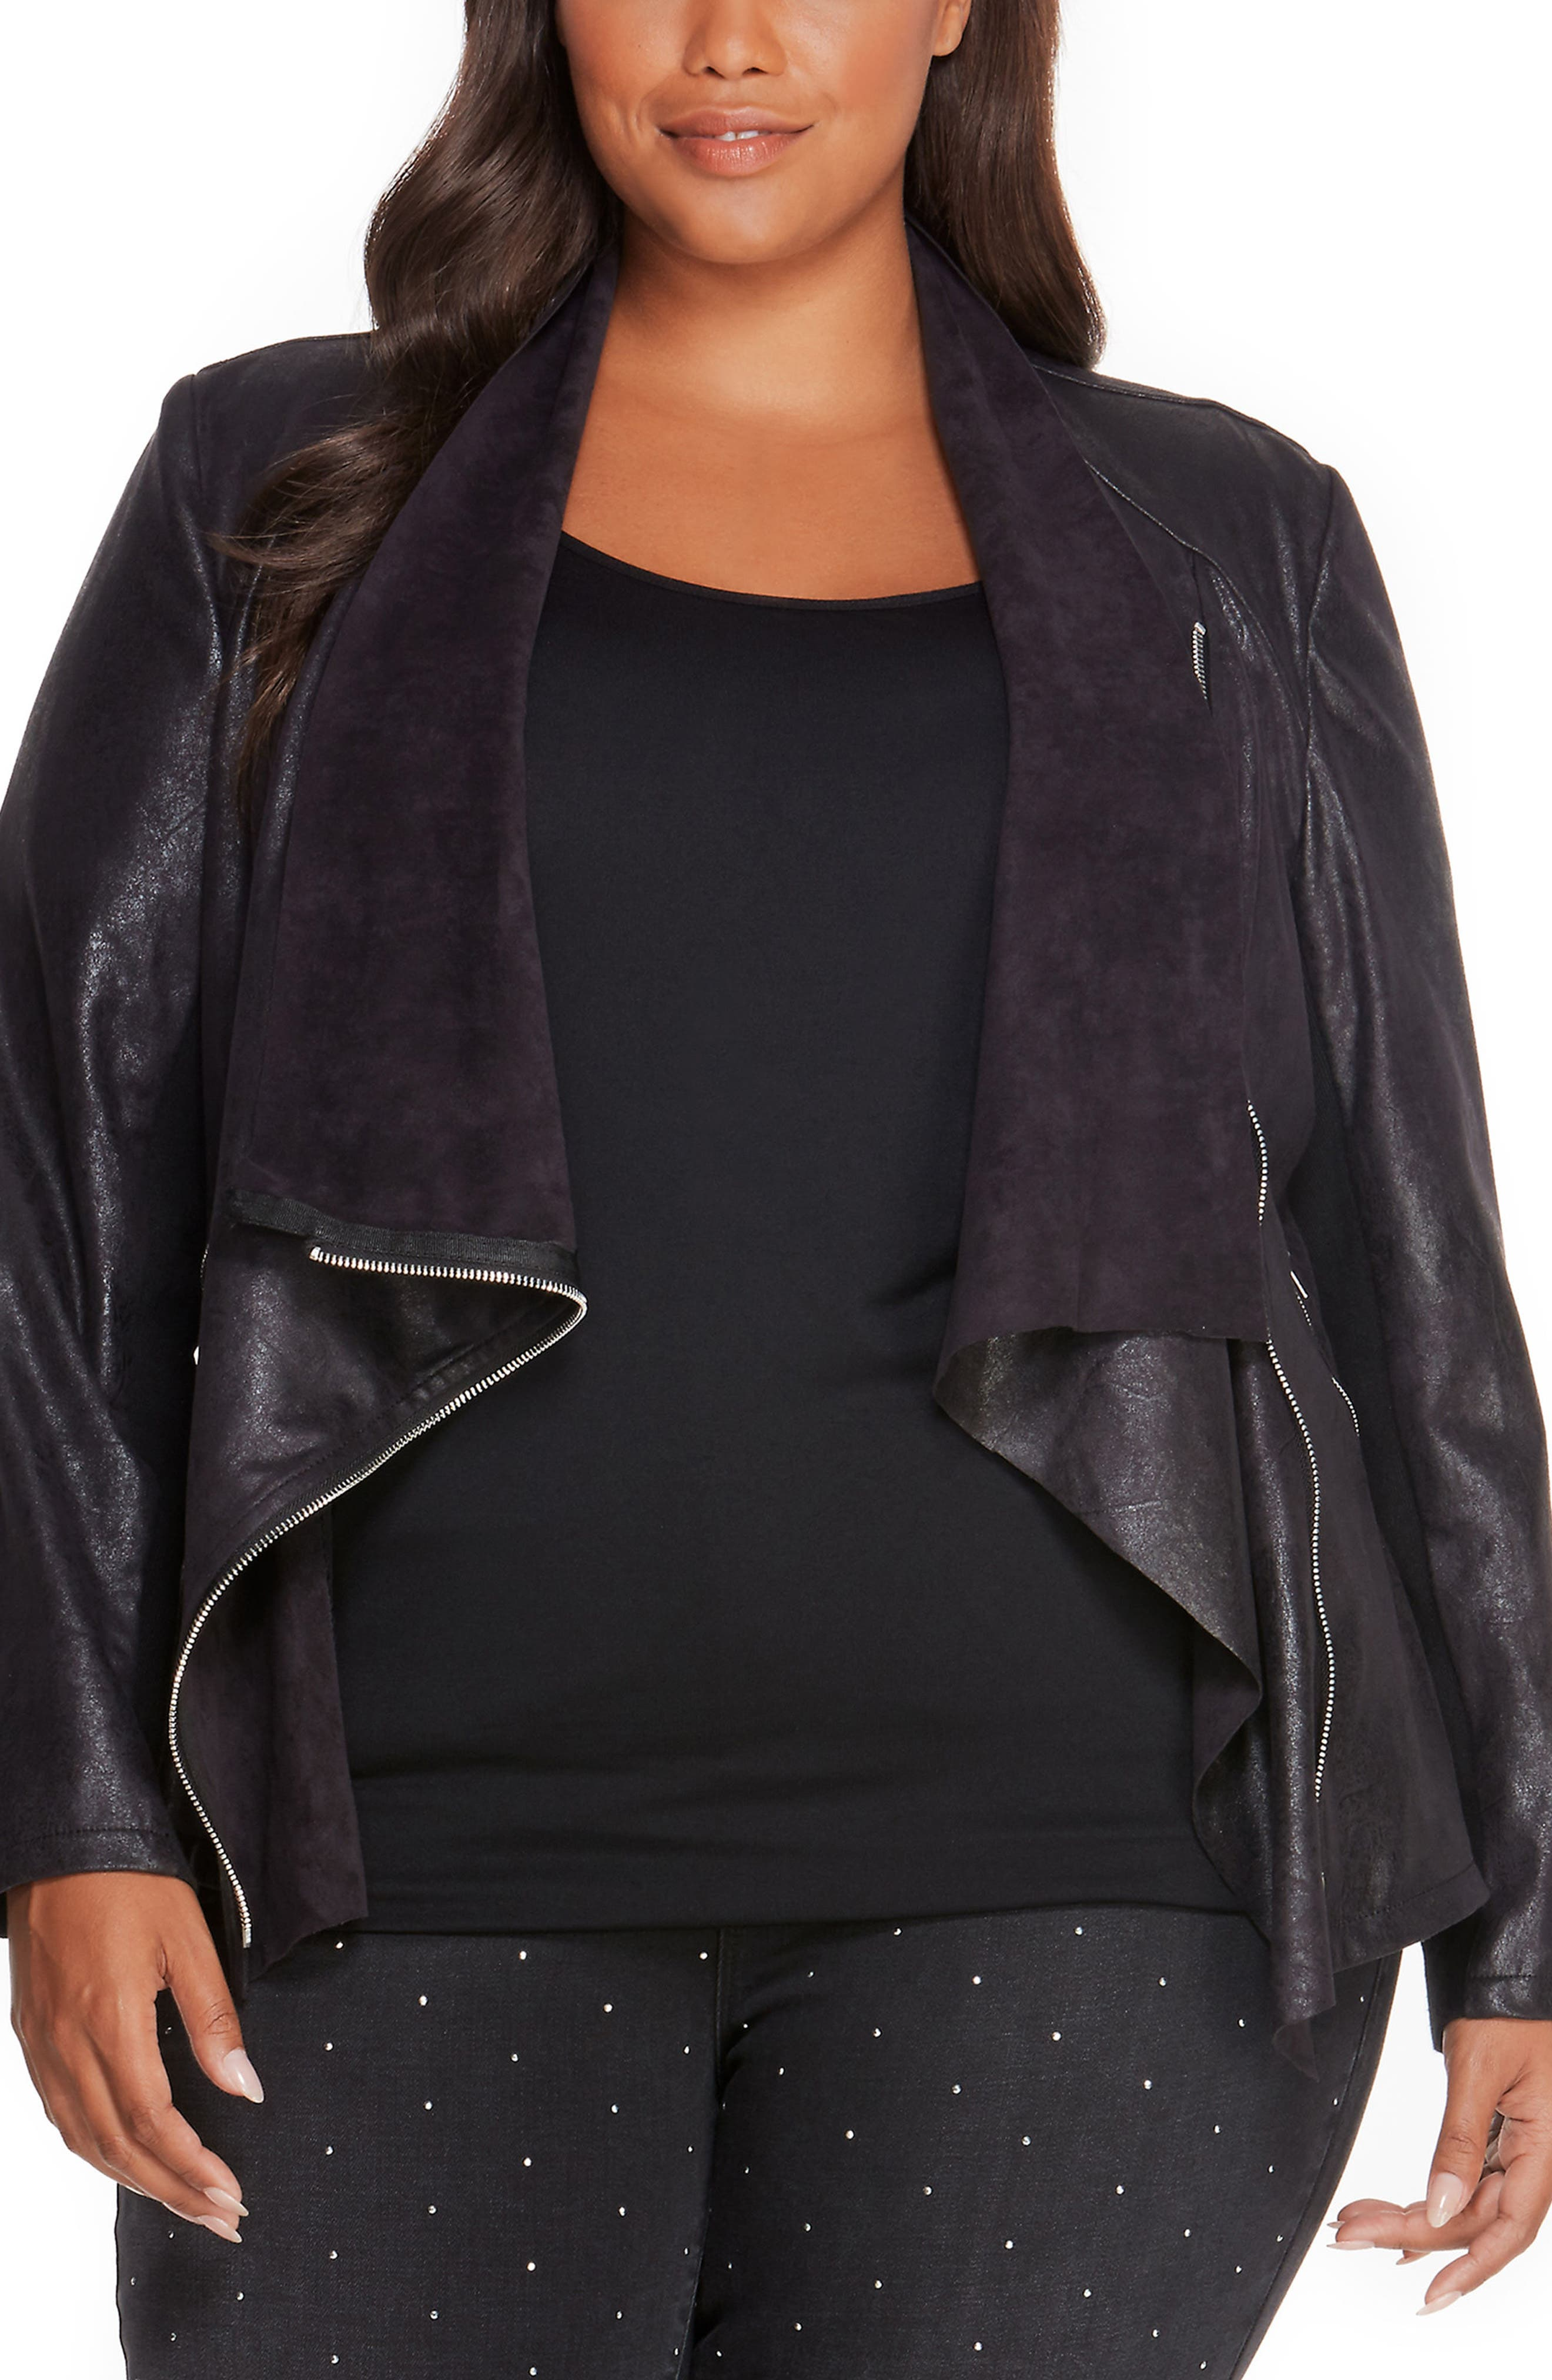 Alternate Image 1 Selected - REBEL WILSON X ANGELS Asymmetrical Faux Leather Jacket (Plus Size)